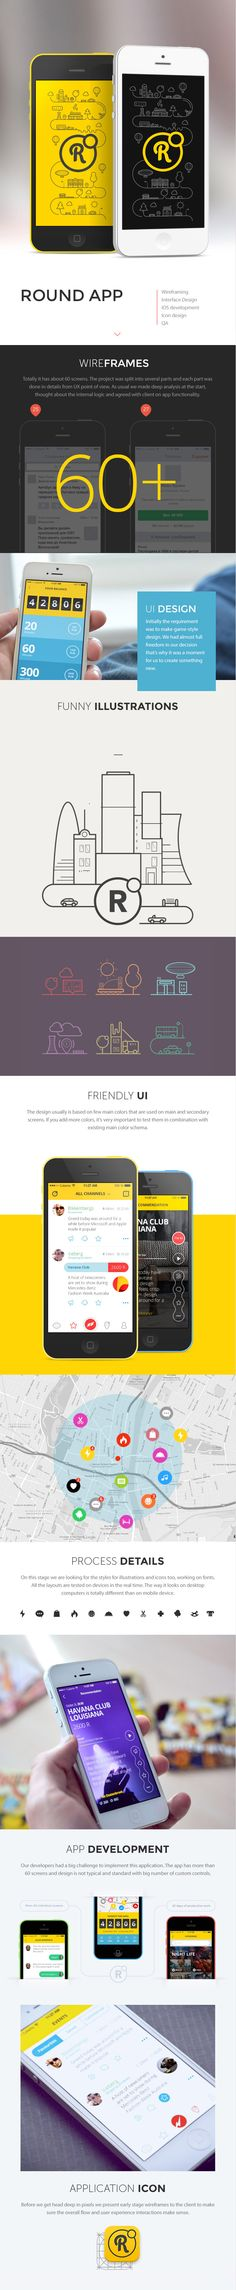 Round iPhone app. #ui #interface #mobile